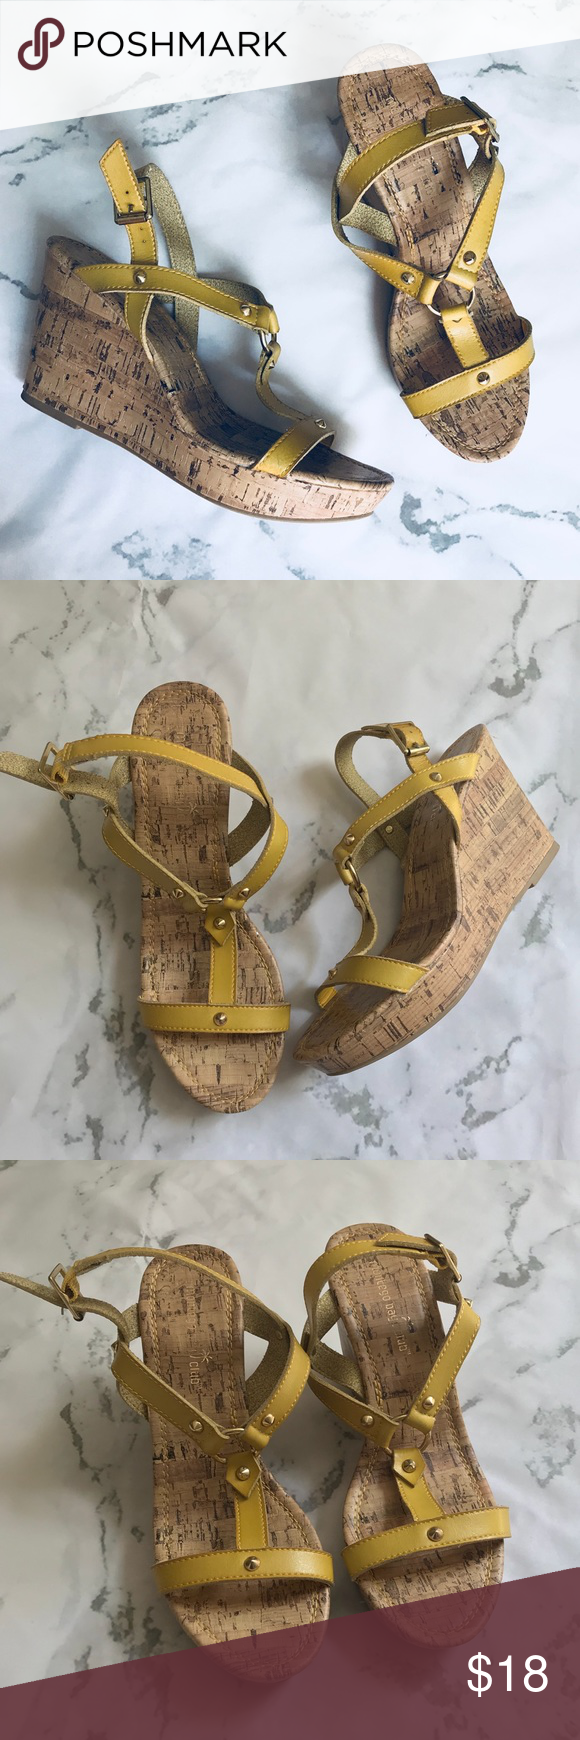 "647bb4c7258fd Montego Bay mustard gold wedge sandals Gently worn. No imperfections  signs  of wear. 4"" heel   wedge Montego Bay Club Shoes Wedges"